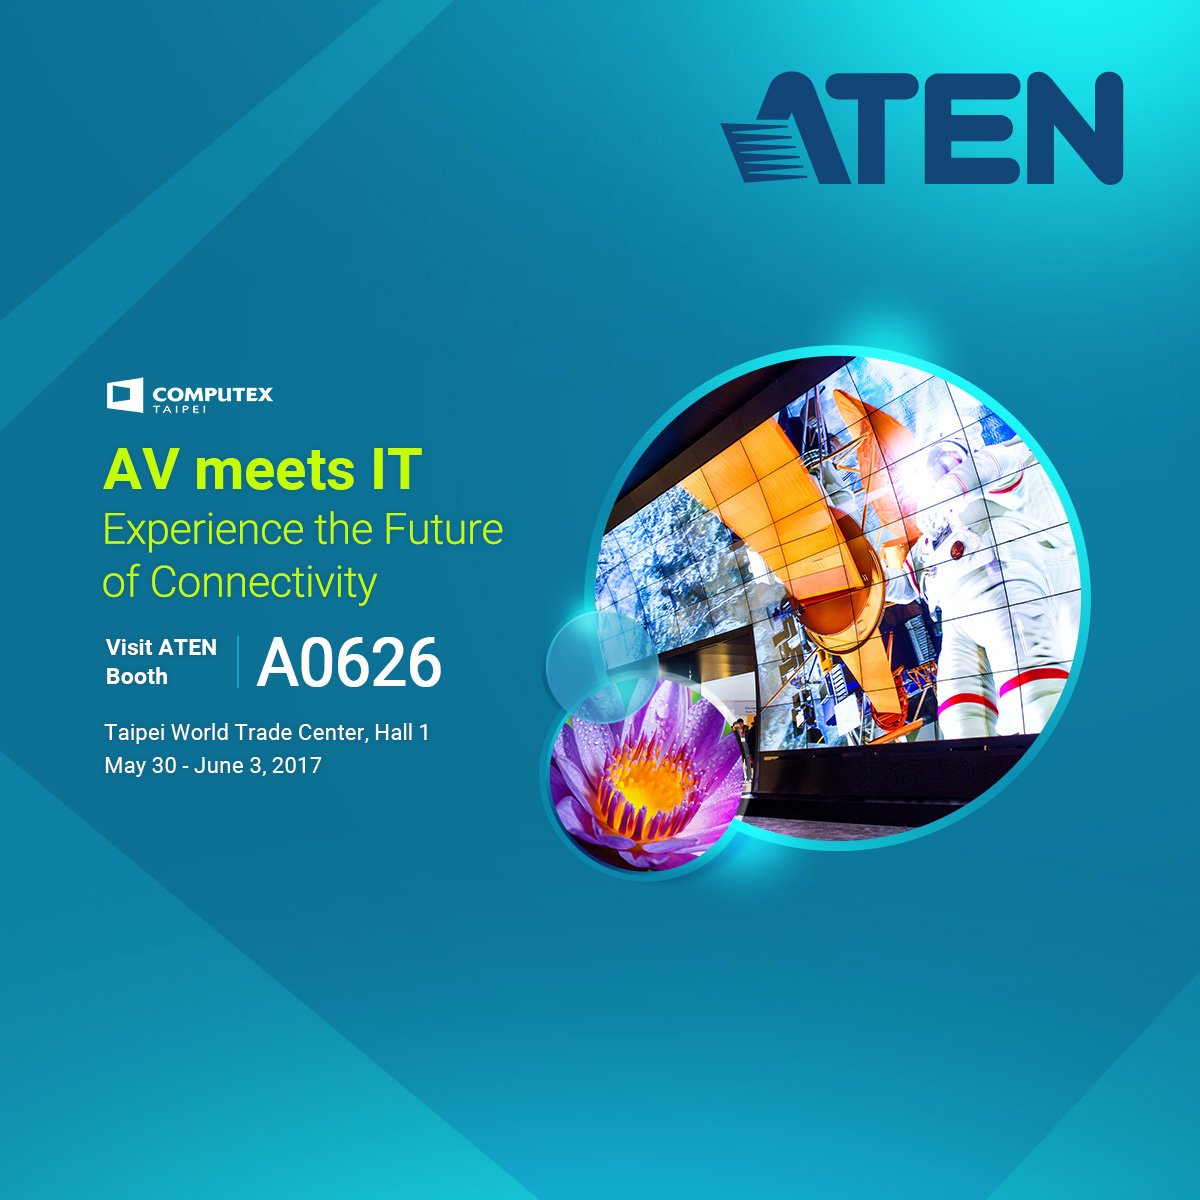 ATEN to show the future of AV meets IT at COMPUTEX 2017